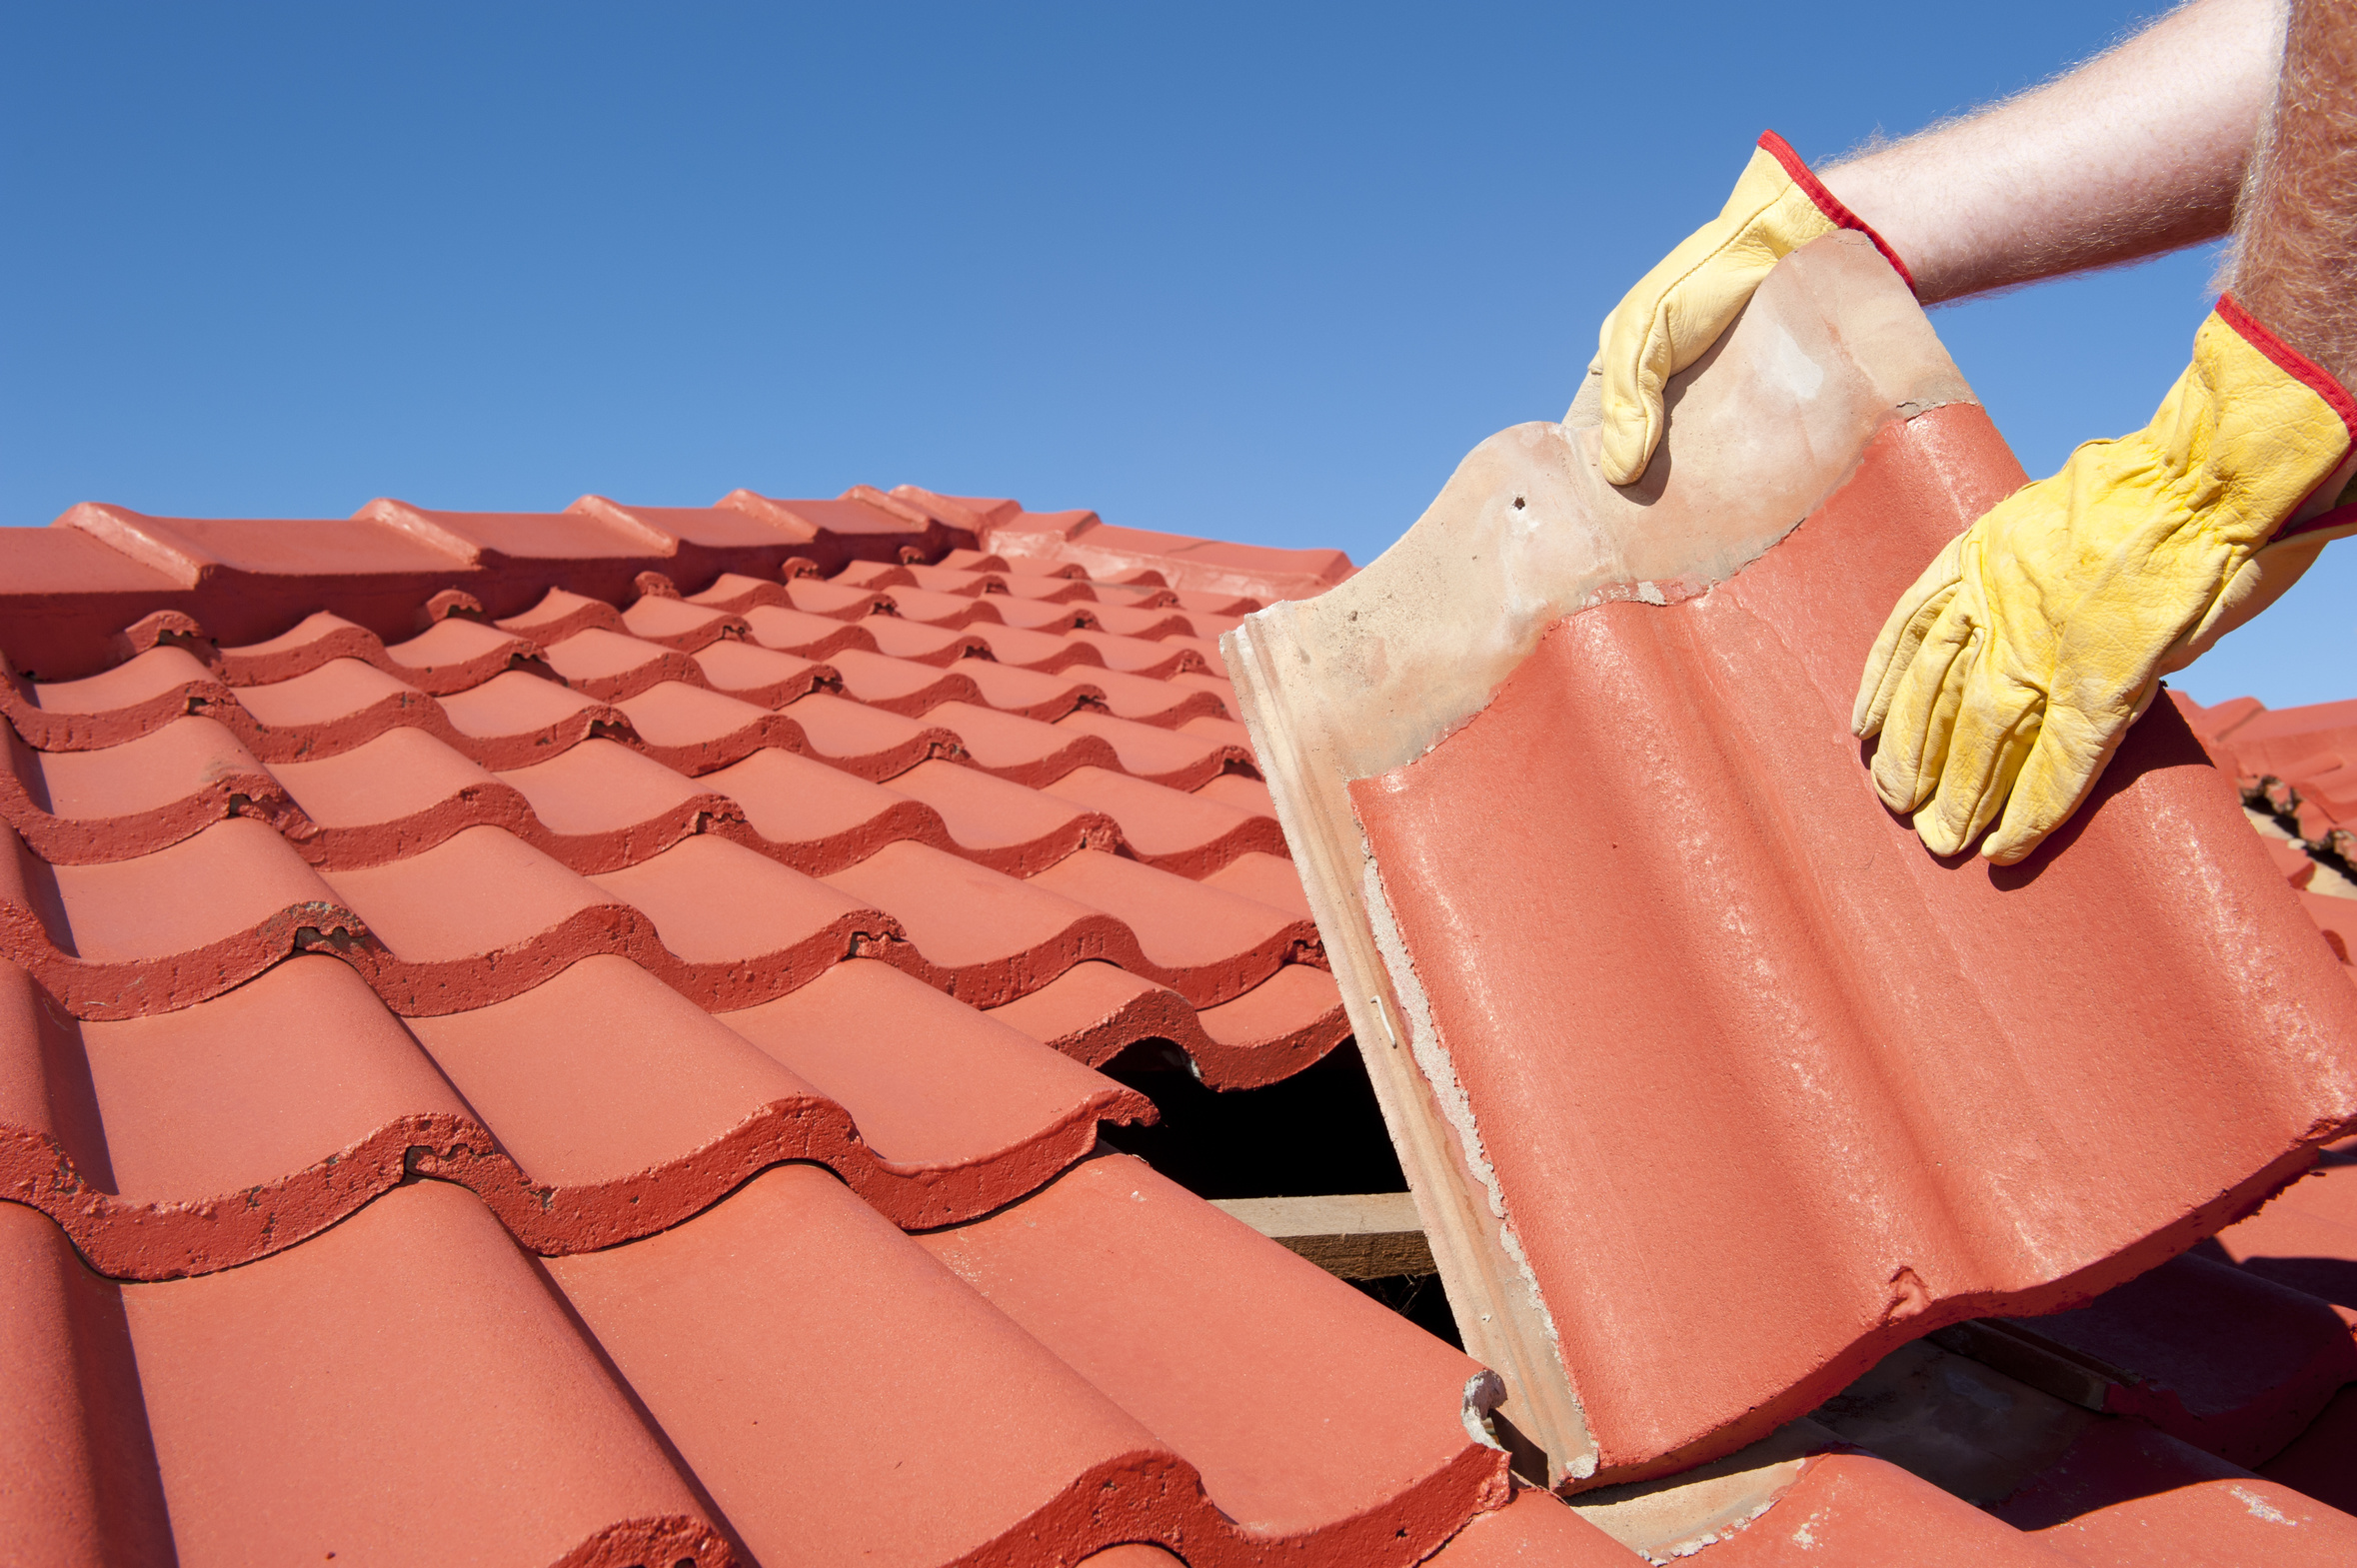 Replace your roof? Patch it? Wait a year? Here's how to